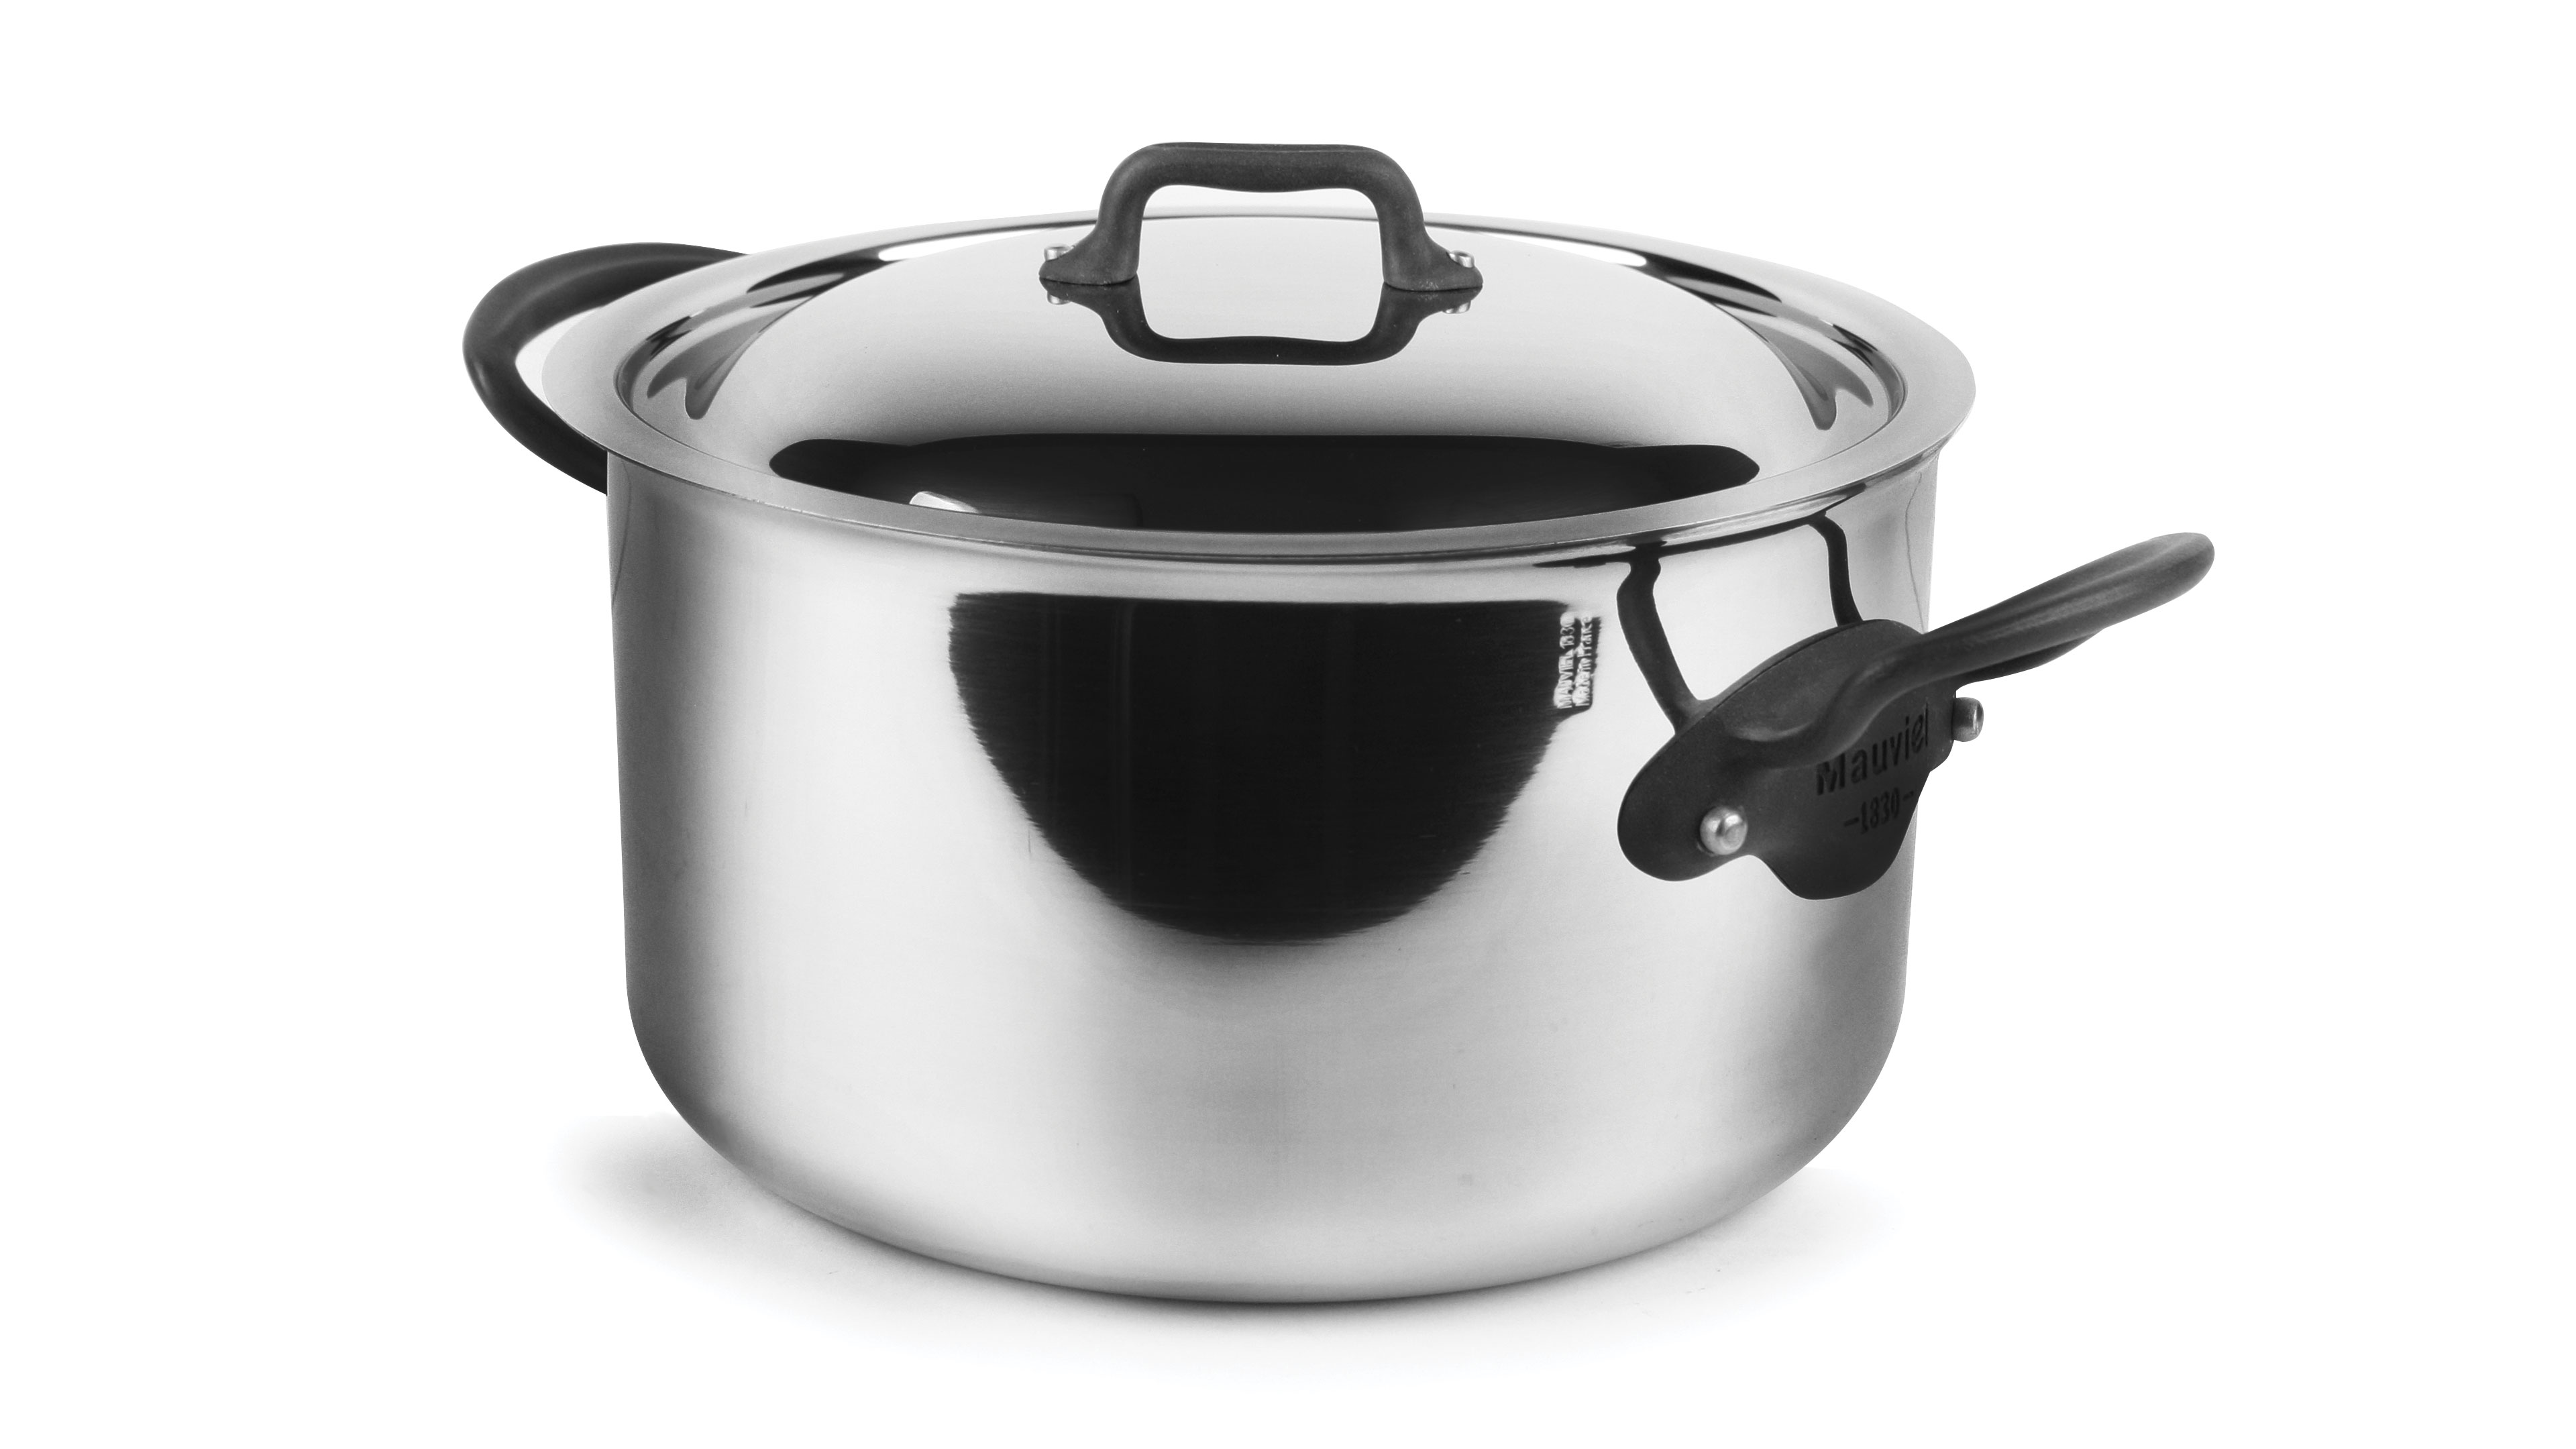 Mauviel M Cook Pro Stainless Steel Stock Pot 6 4 Quart